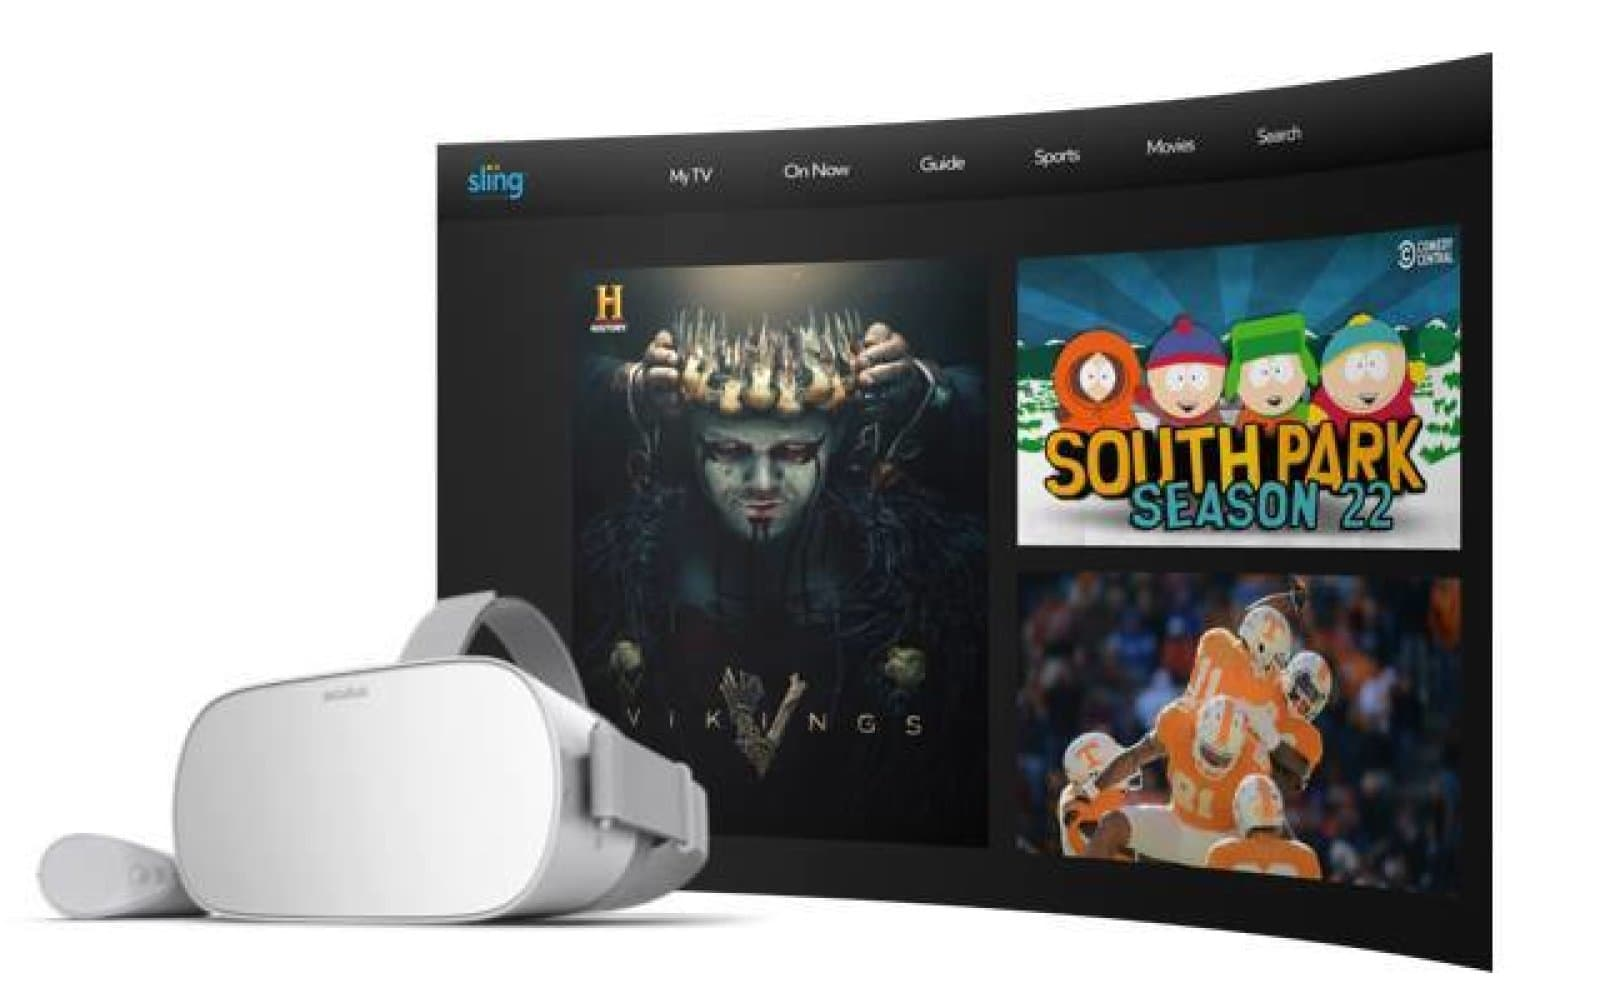 Sling adds social TV and movie viewing to its Oculus Go app